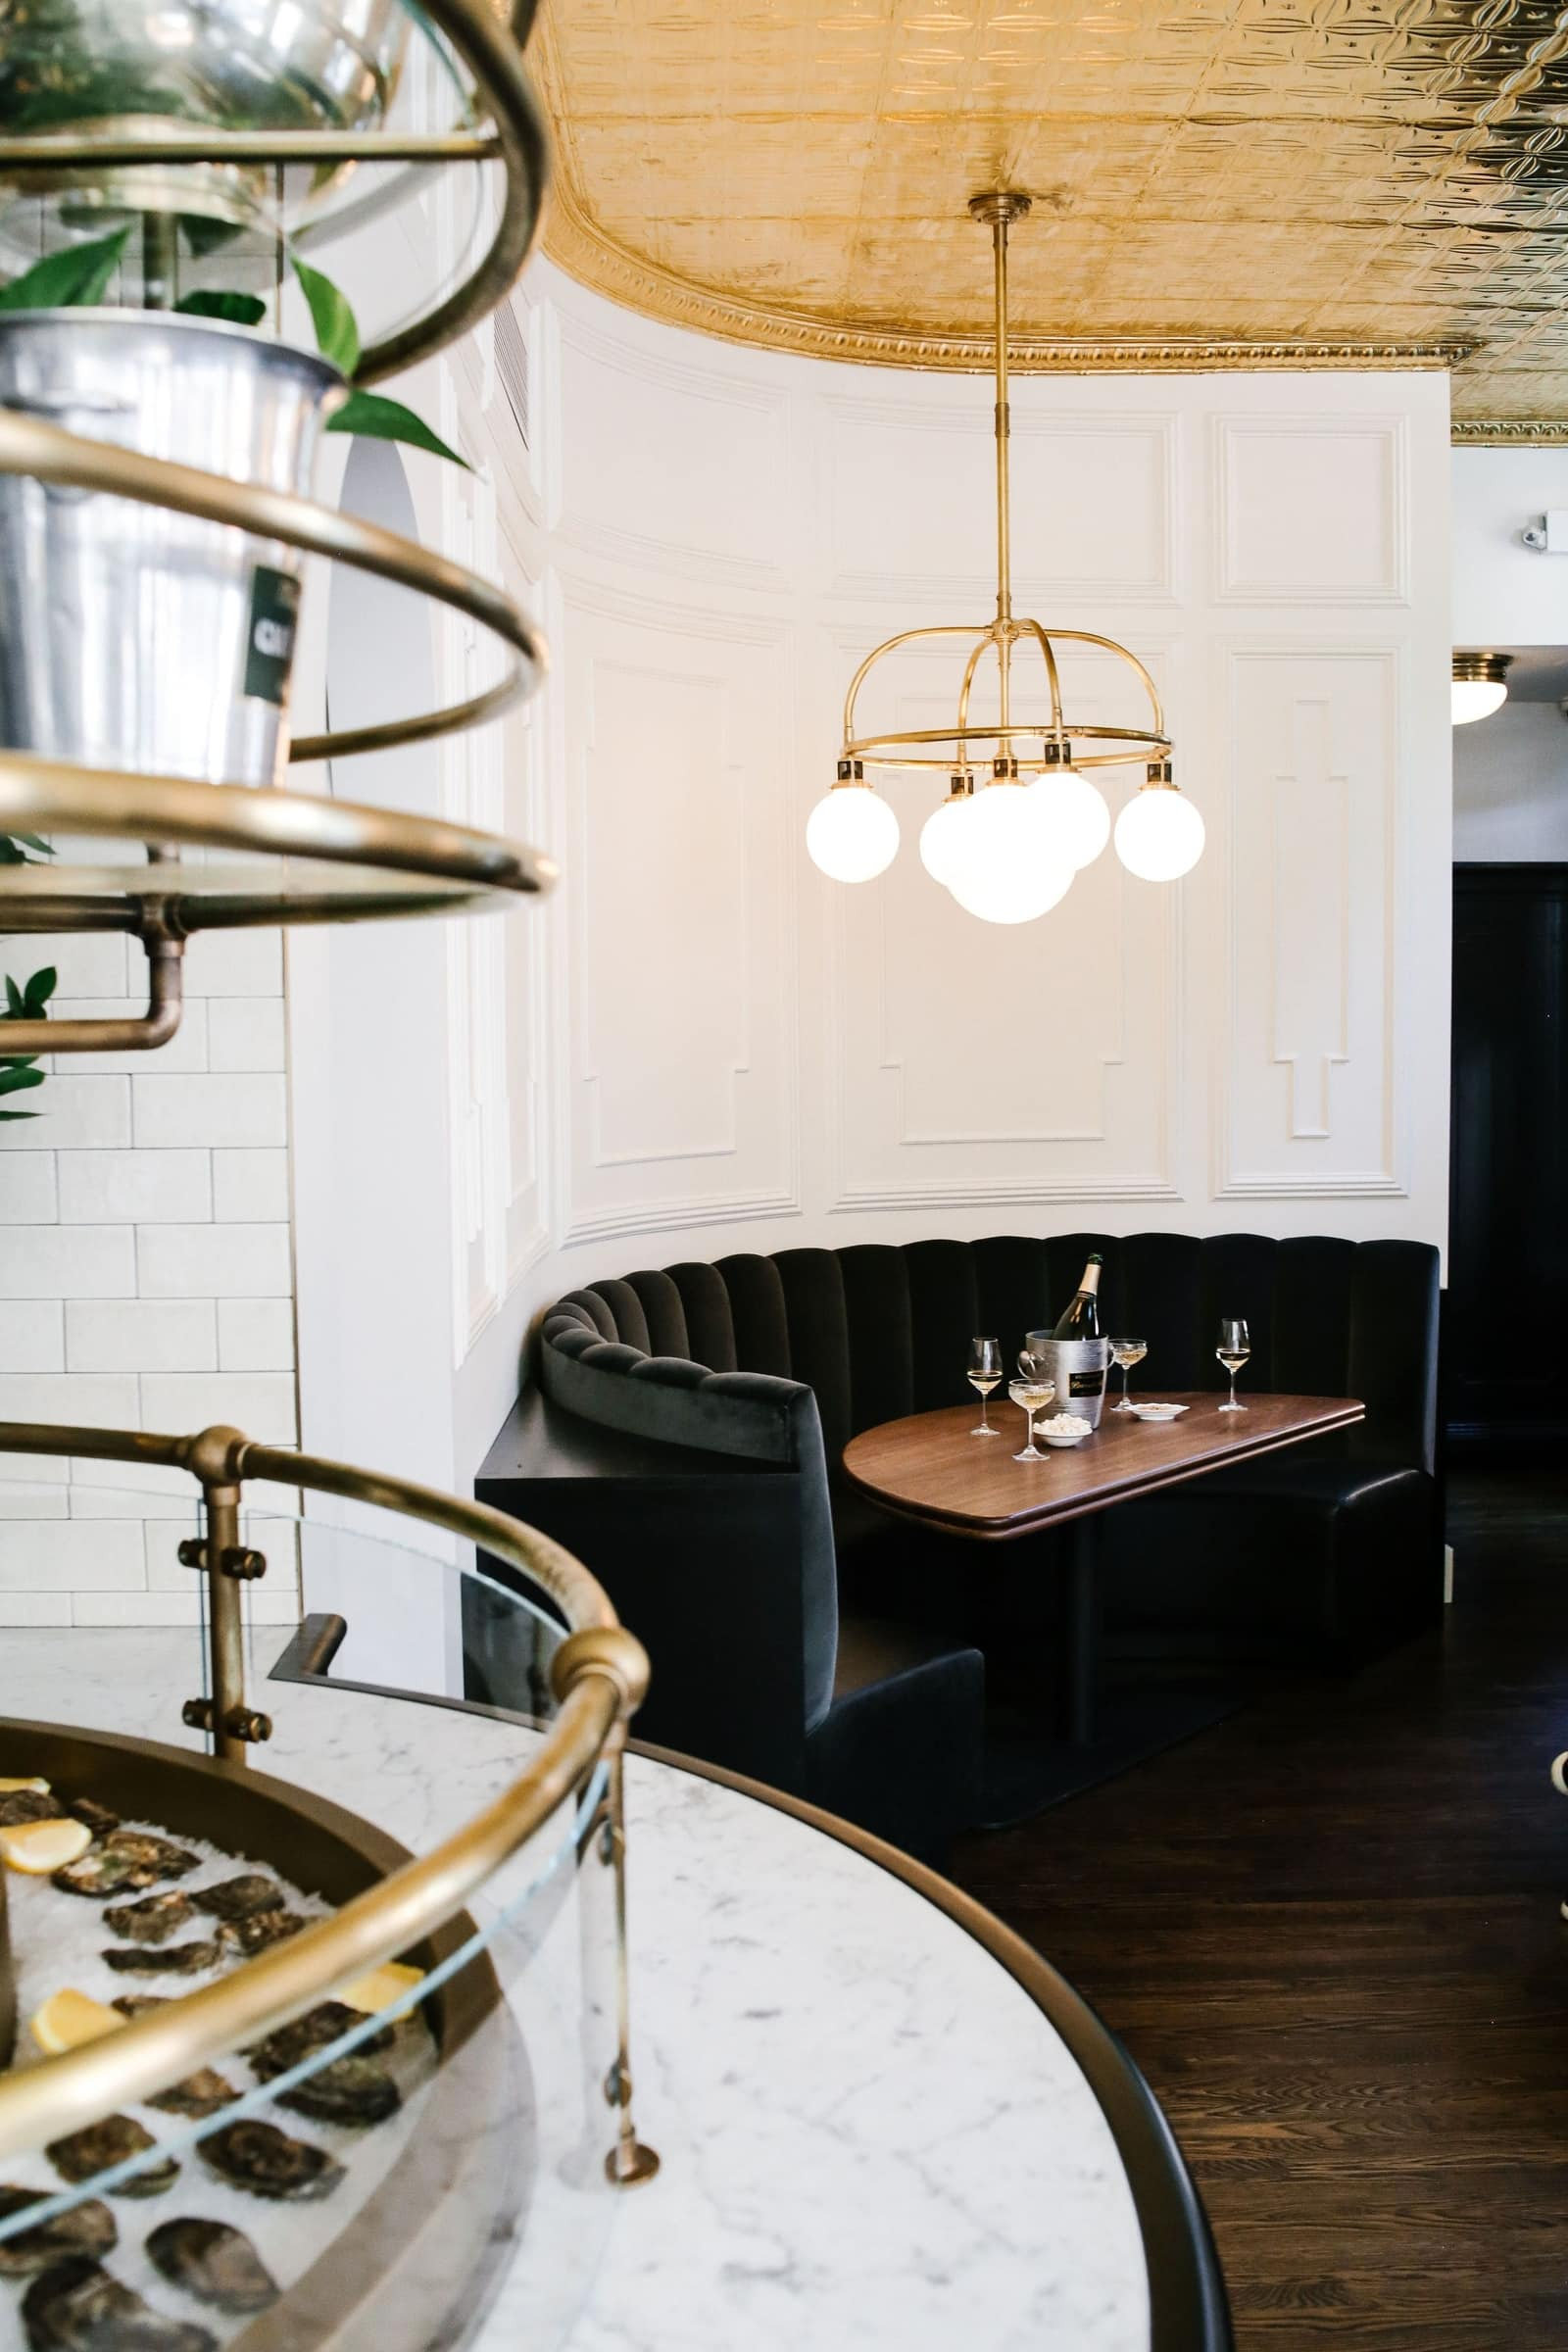 This All-Black Champagne & Oyster Bar in NYC Will Make Us Want To Toast Before New Year's Eve! oyster bar This All-Black Champagne & Oyster Bar in NYC Will Make Us Want To Toast Before New Year's Eve! 3